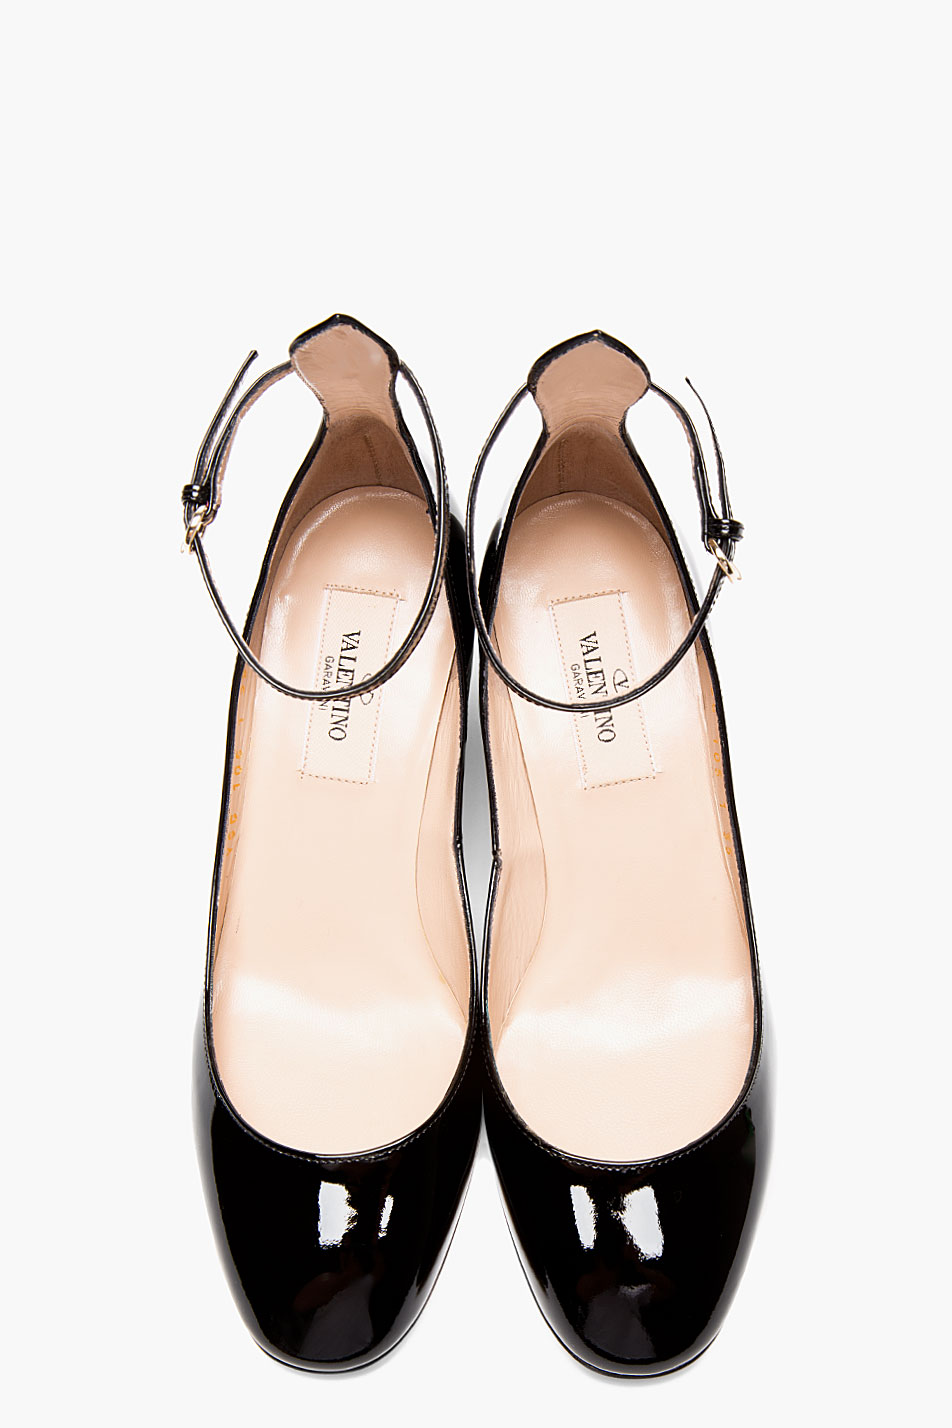 Valentino Black Patent Ankle Strap Mary Janes In Black Lyst